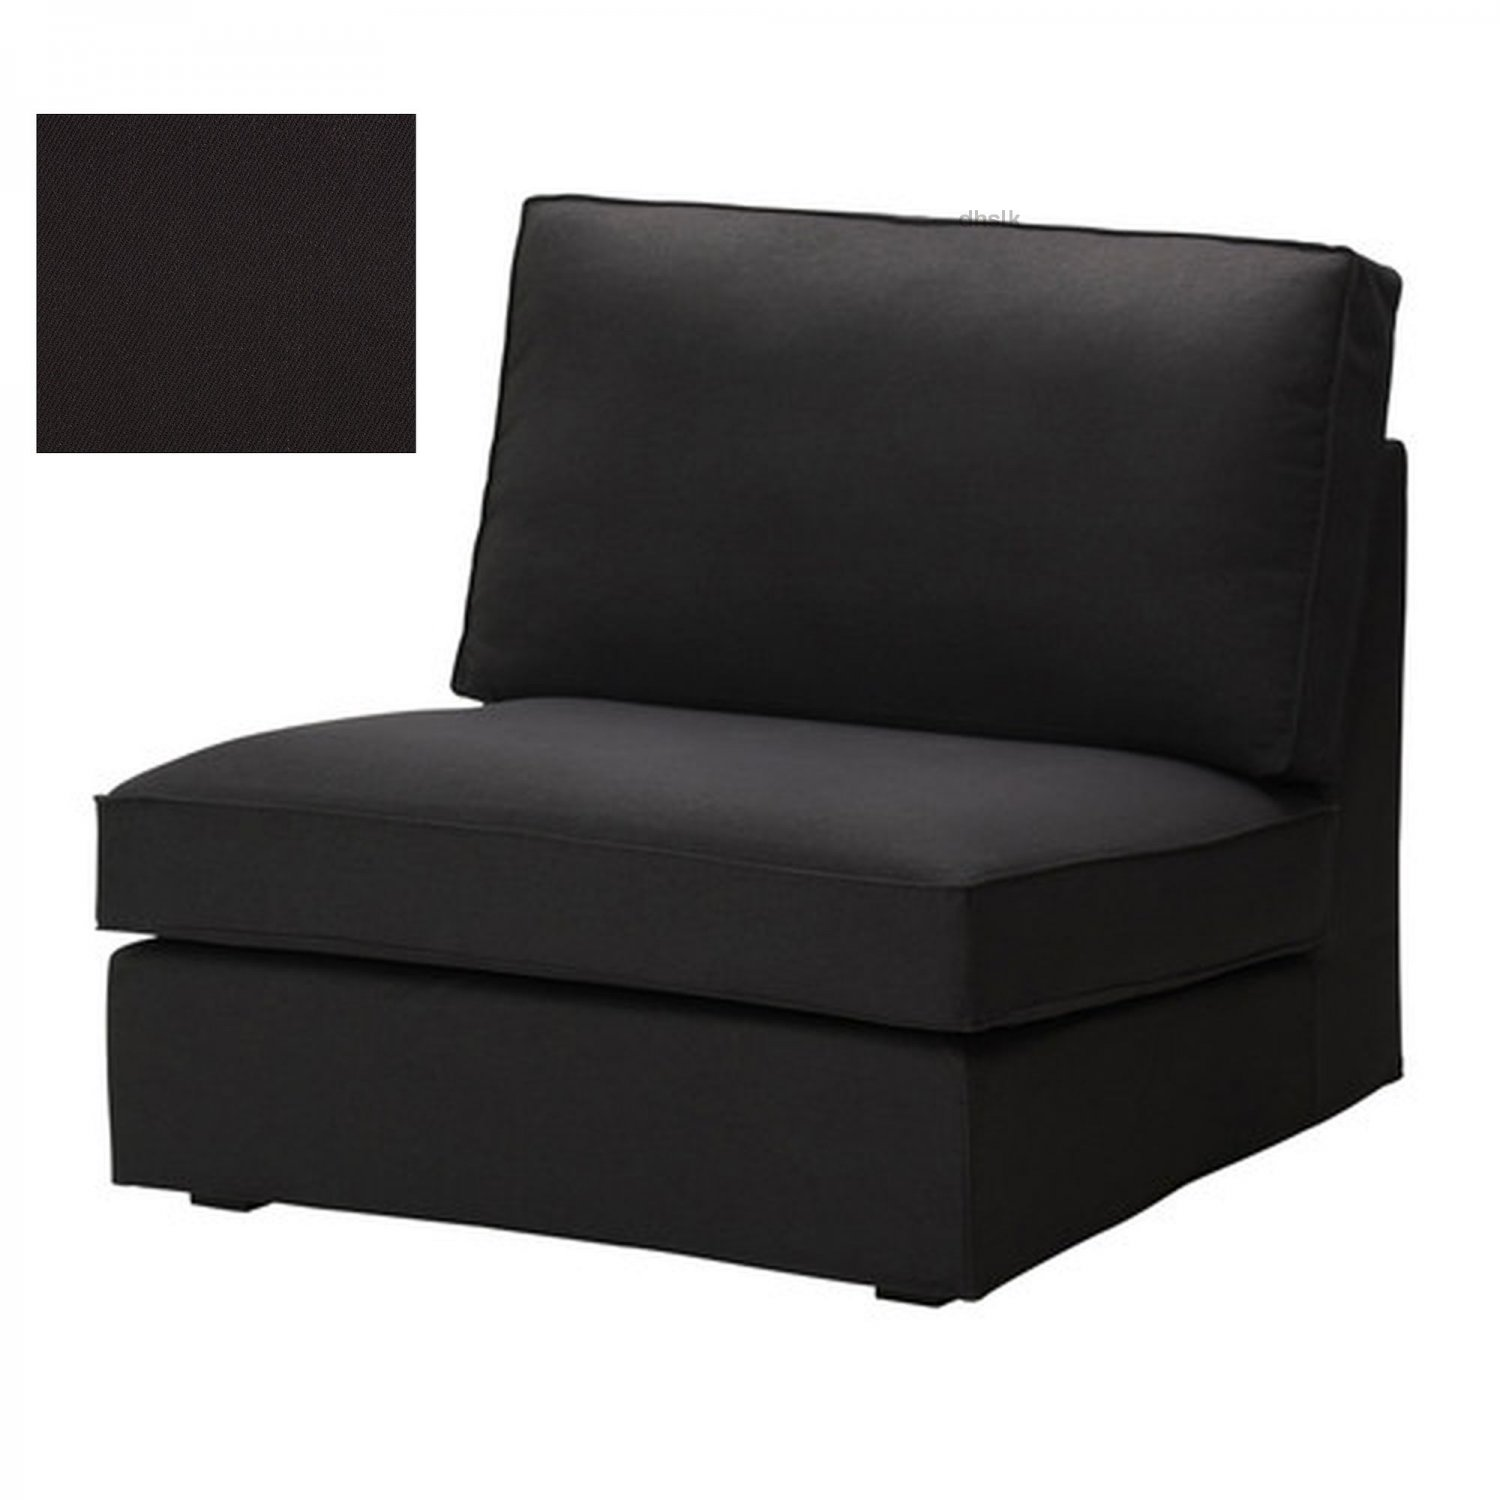 chair covers that fit ikea chairs cheapest folding kivik 1 one seat sofa slipcover cover idemo